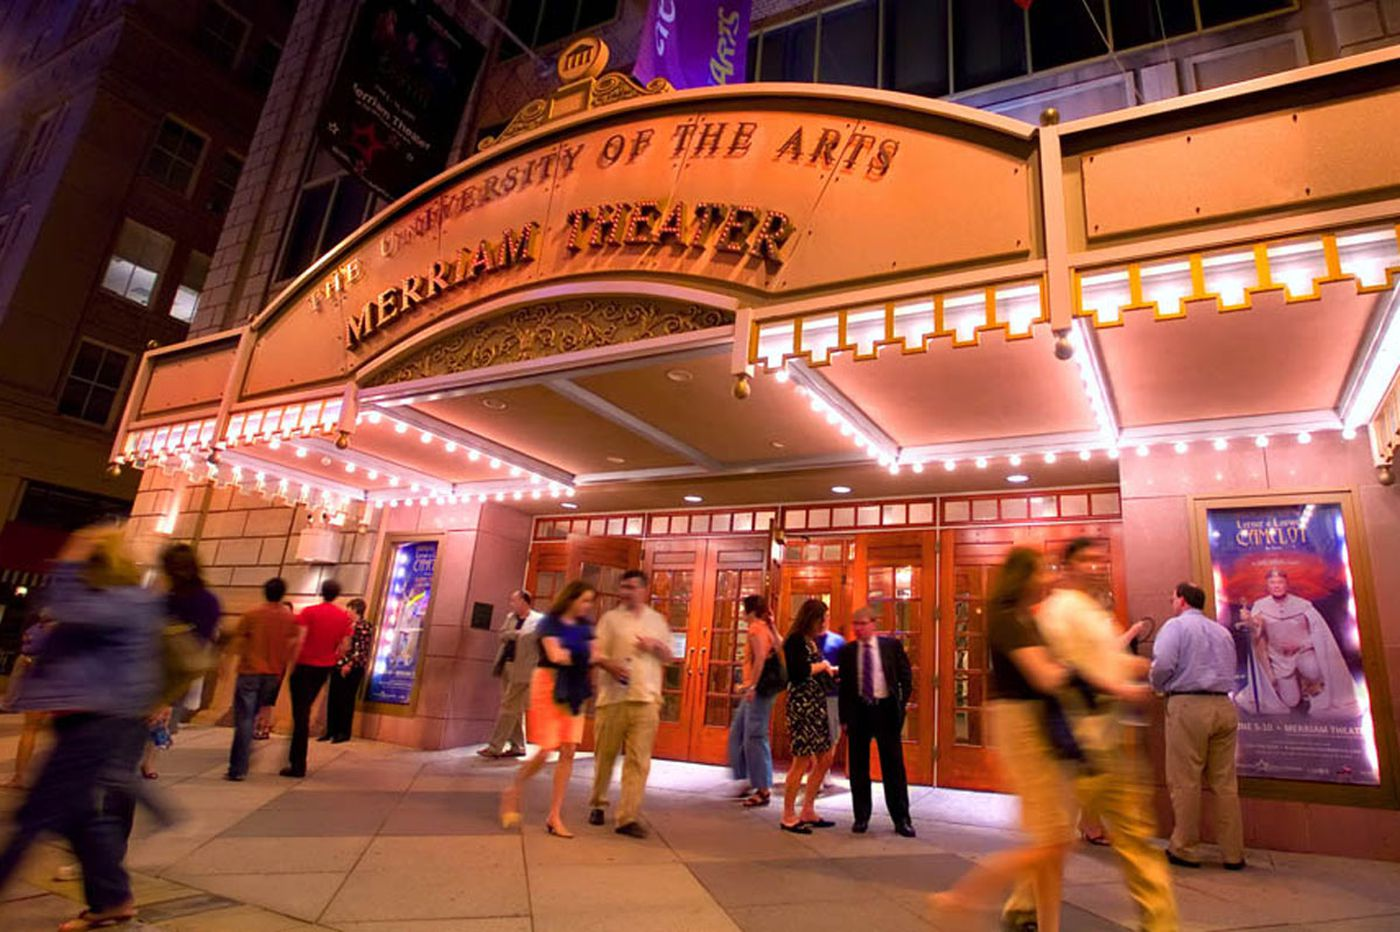 Kimmel purchasing Merriam Theater from University of the Arts, will likely spur more real estate deals